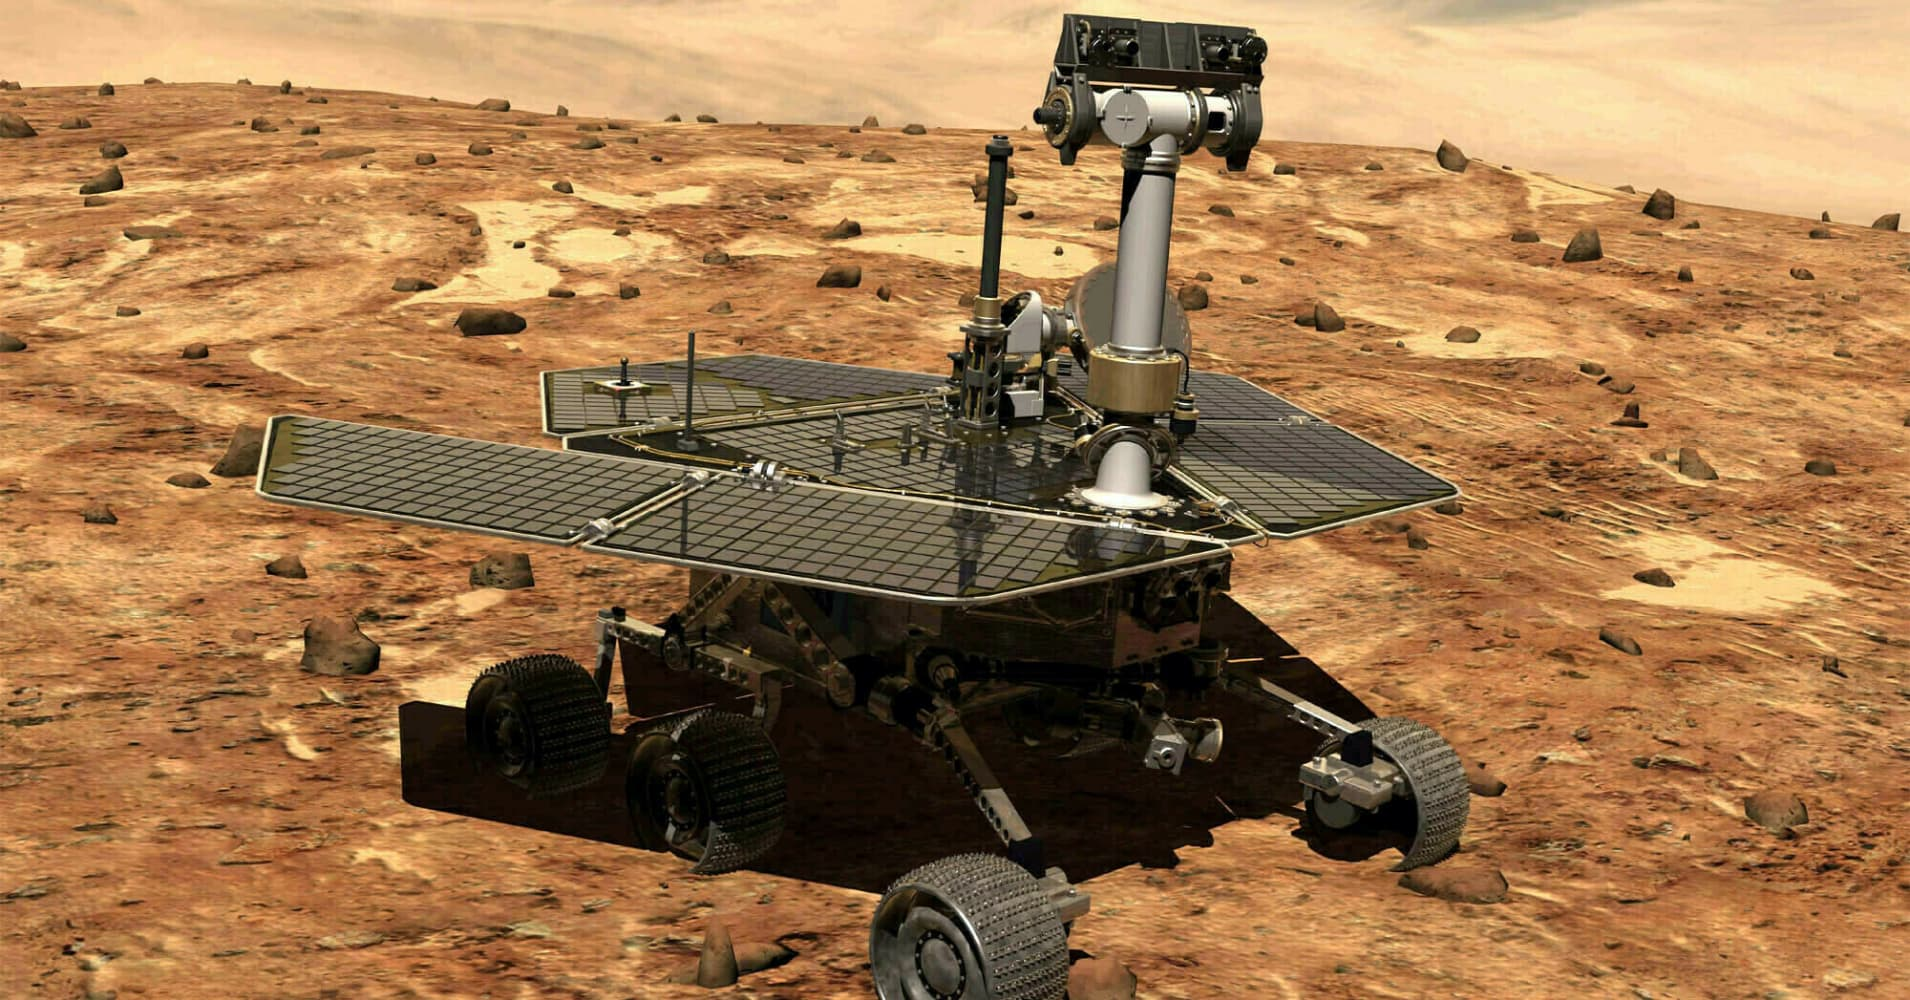 NASA rover Opportunity finally dies on Mars after 15 years